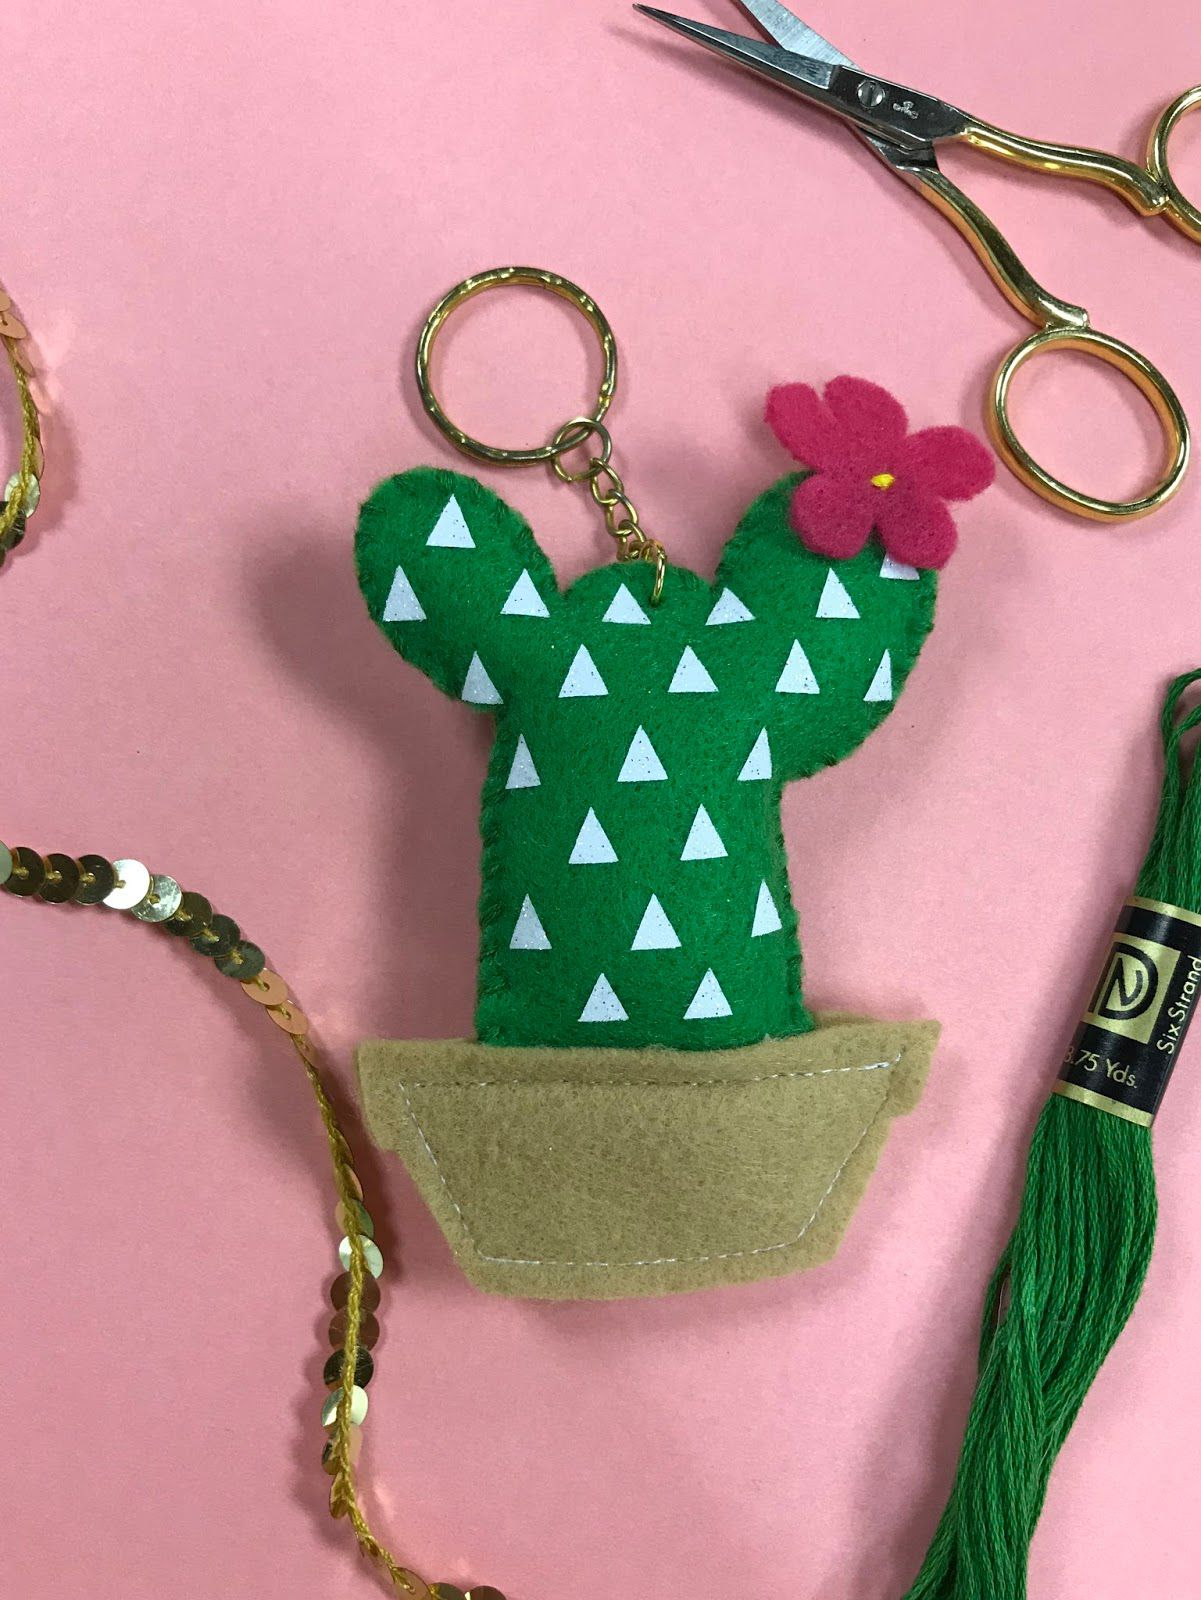 14 Diy Keychains That Make Great Gifts